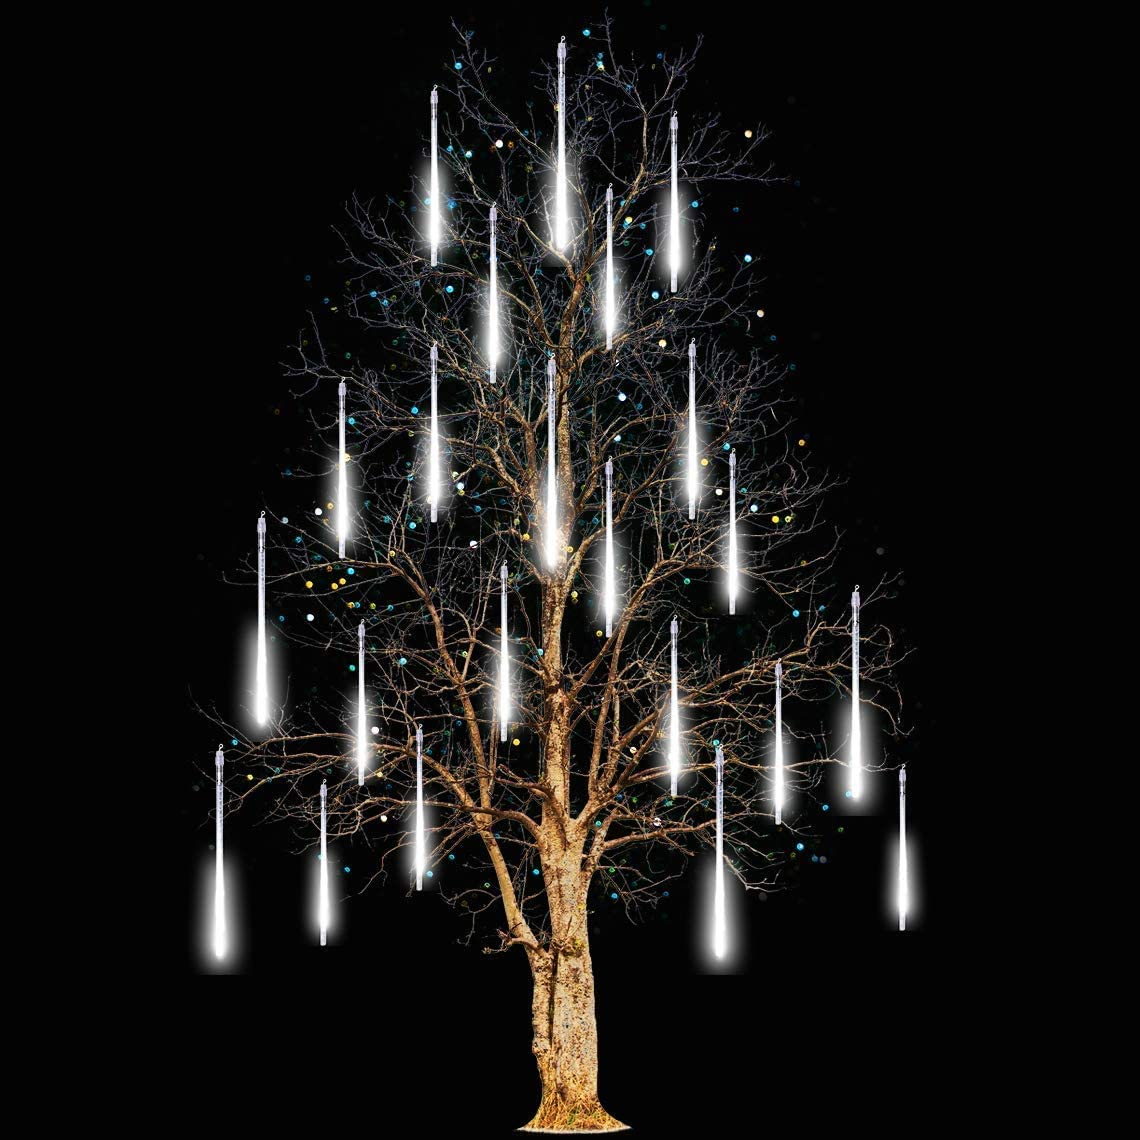 5 Best Outdoor Christmas Lights To Buy 2020 Reviews